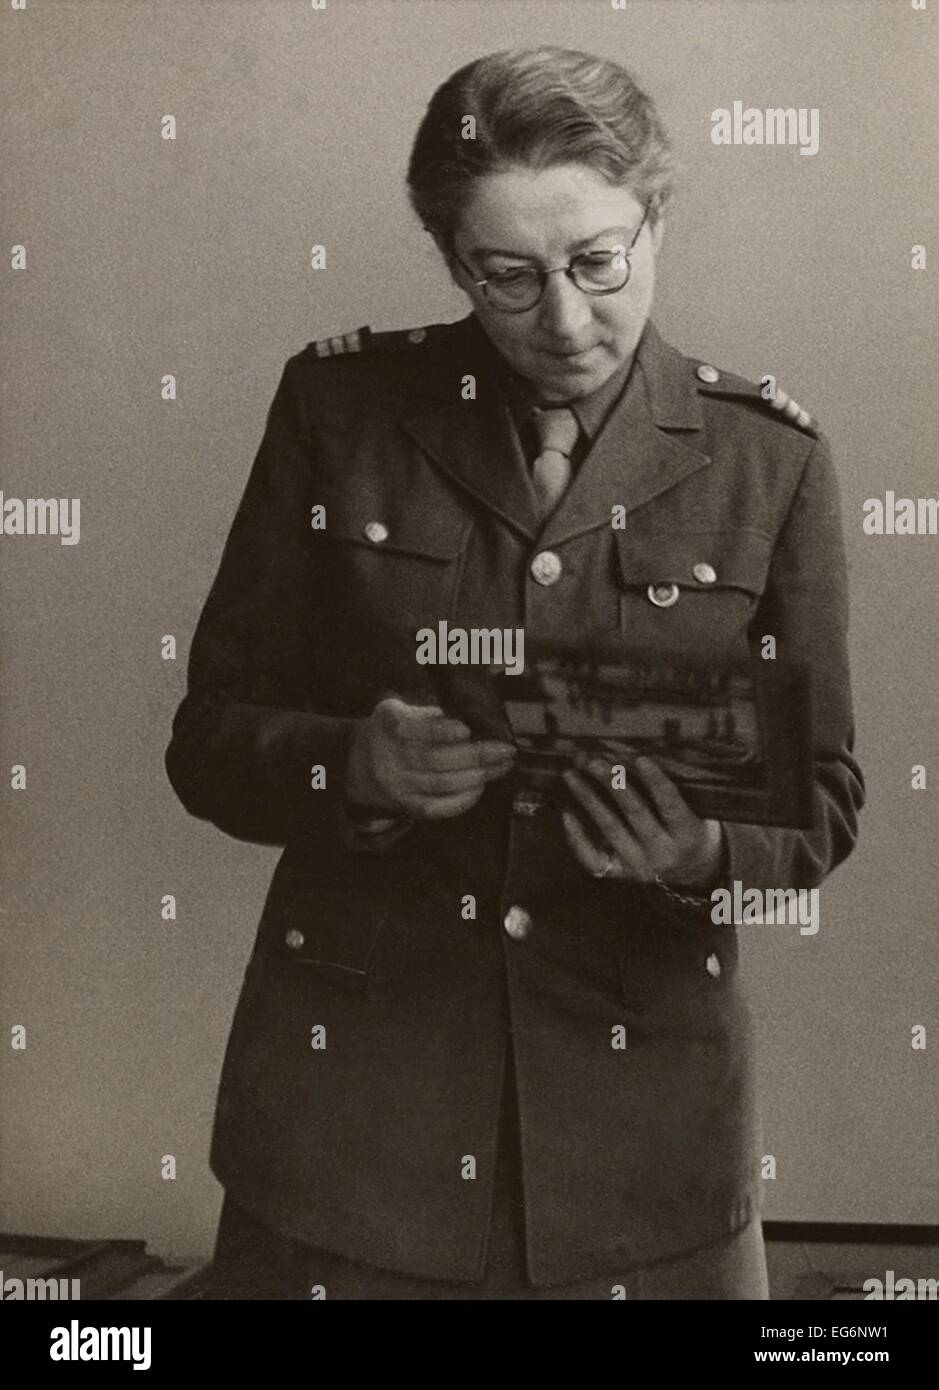 Rose Valland, a French Art Historian, secretly recorded details of the Nazi art plundering. During World War 2, Stock Photo